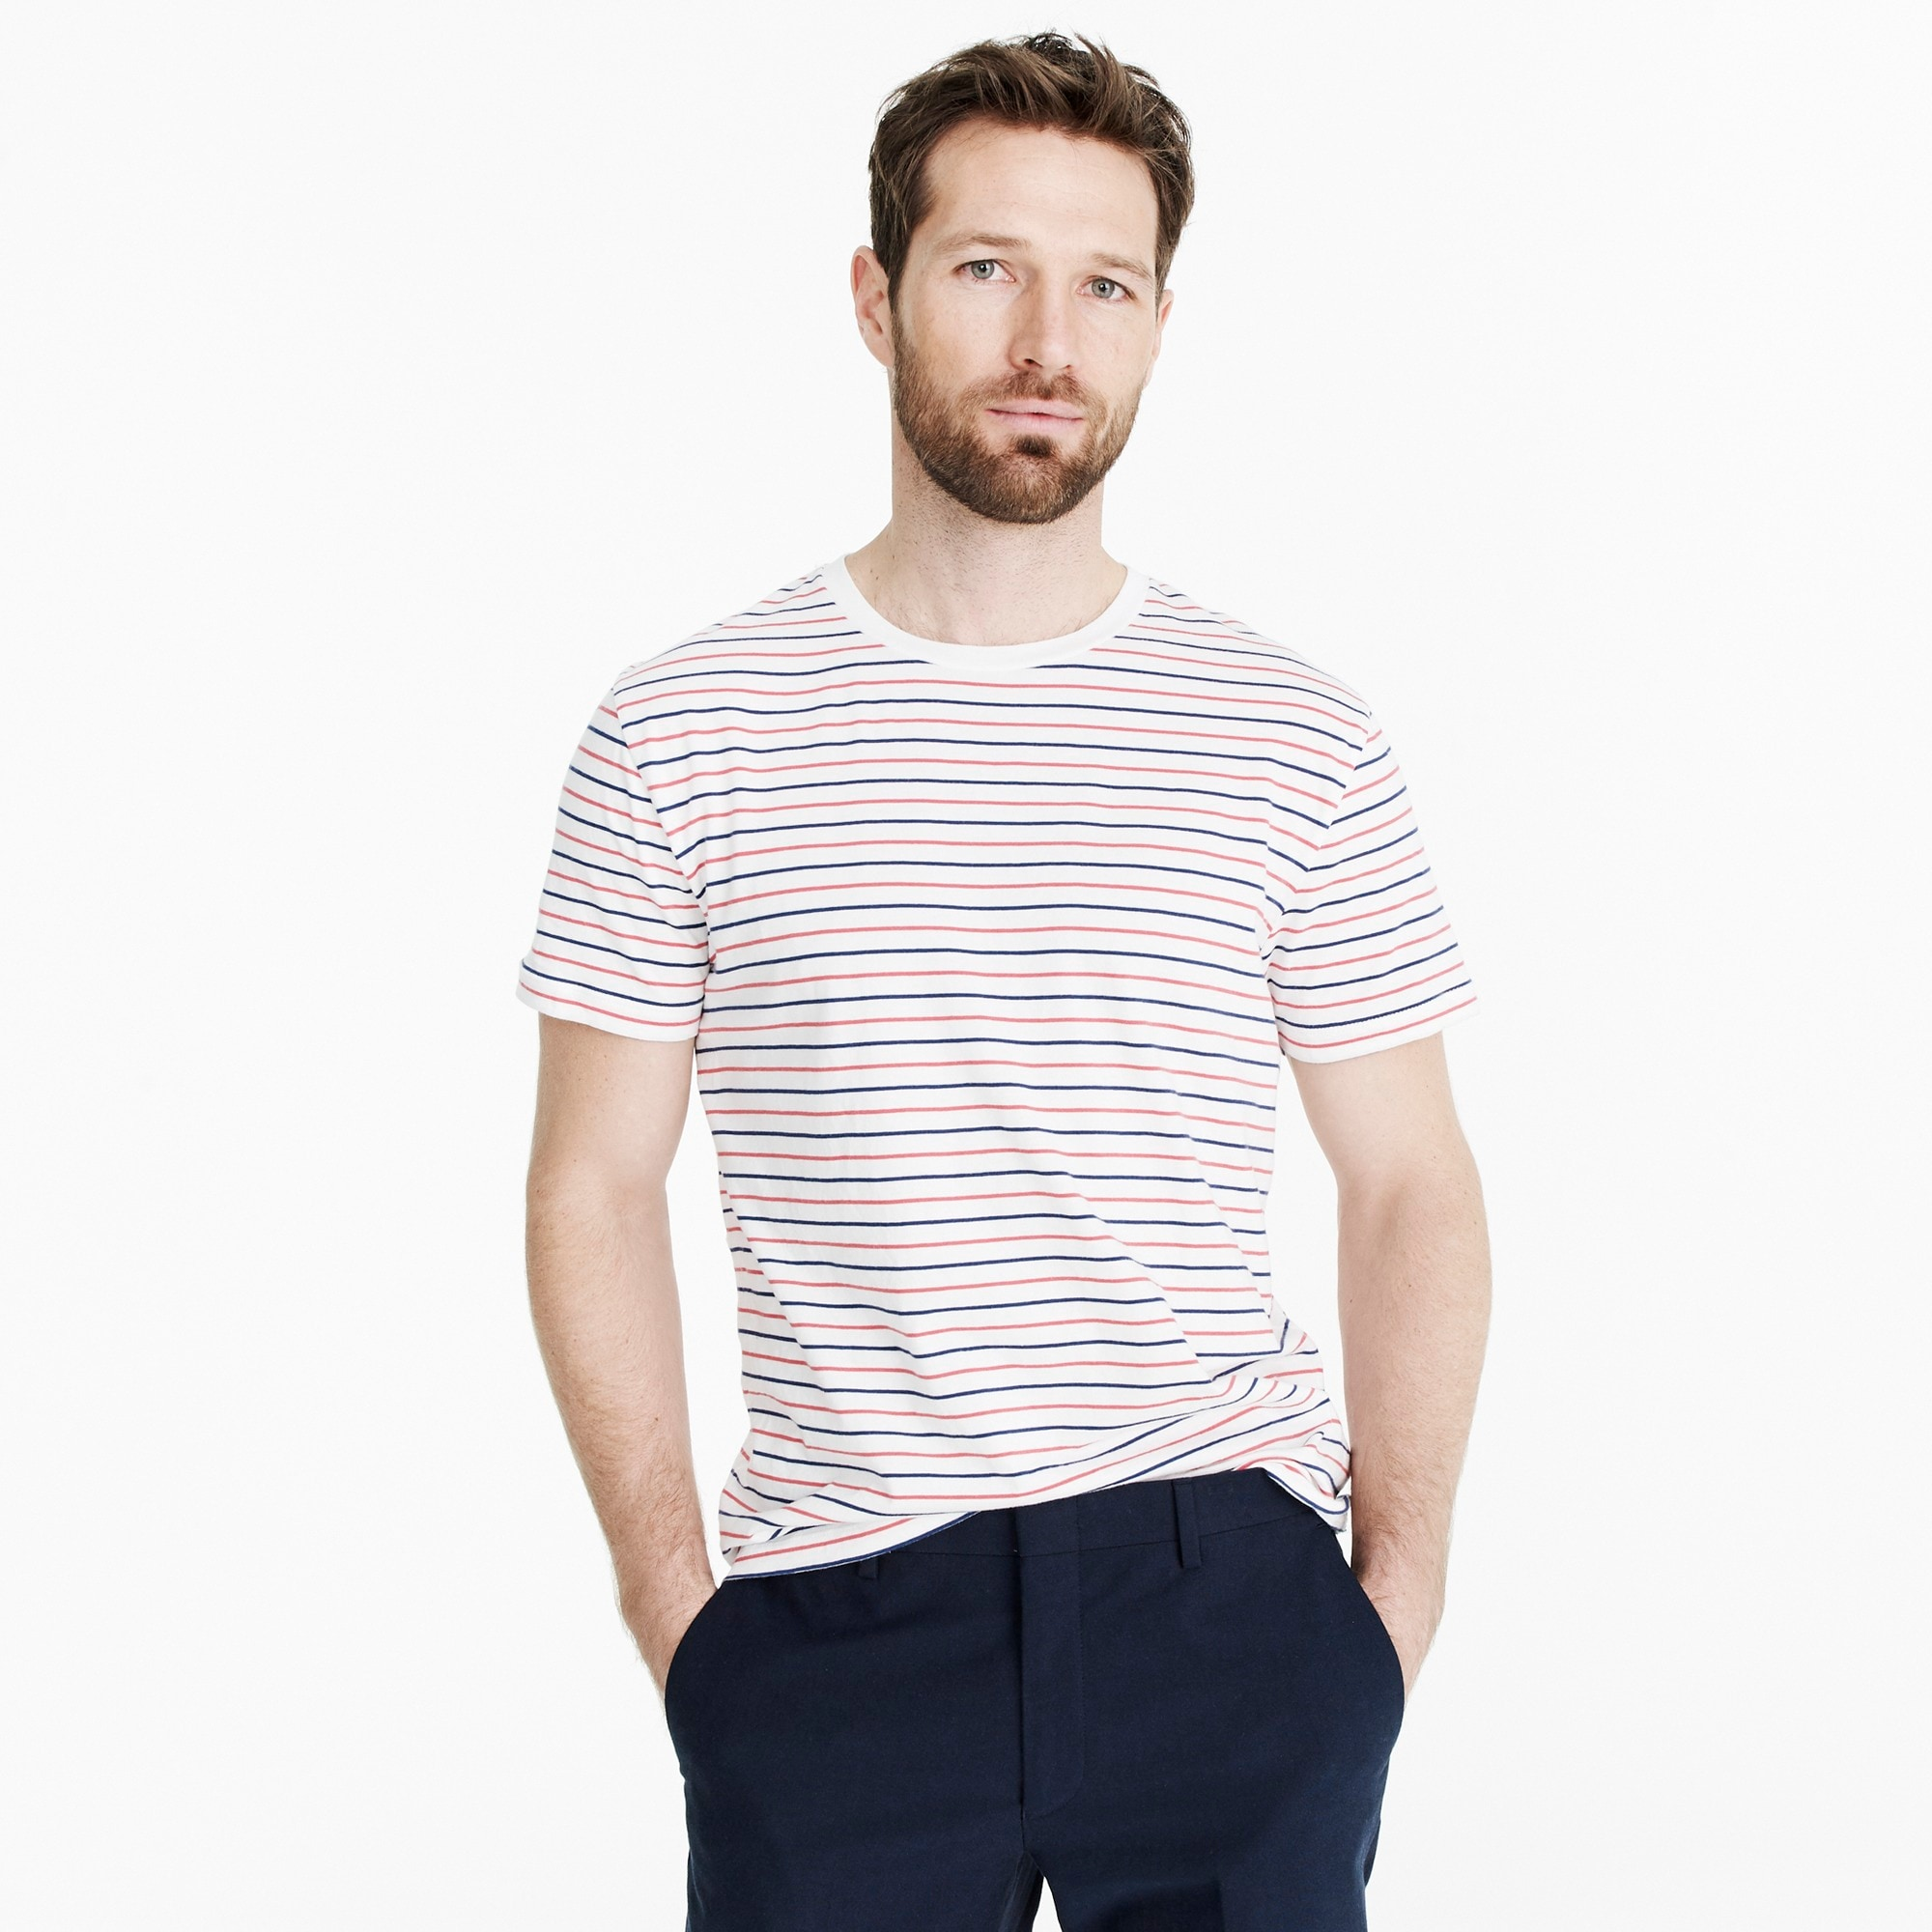 Image 1 for Tall J.Crew Mercantile Broken-in T-shirt in seaside stripe